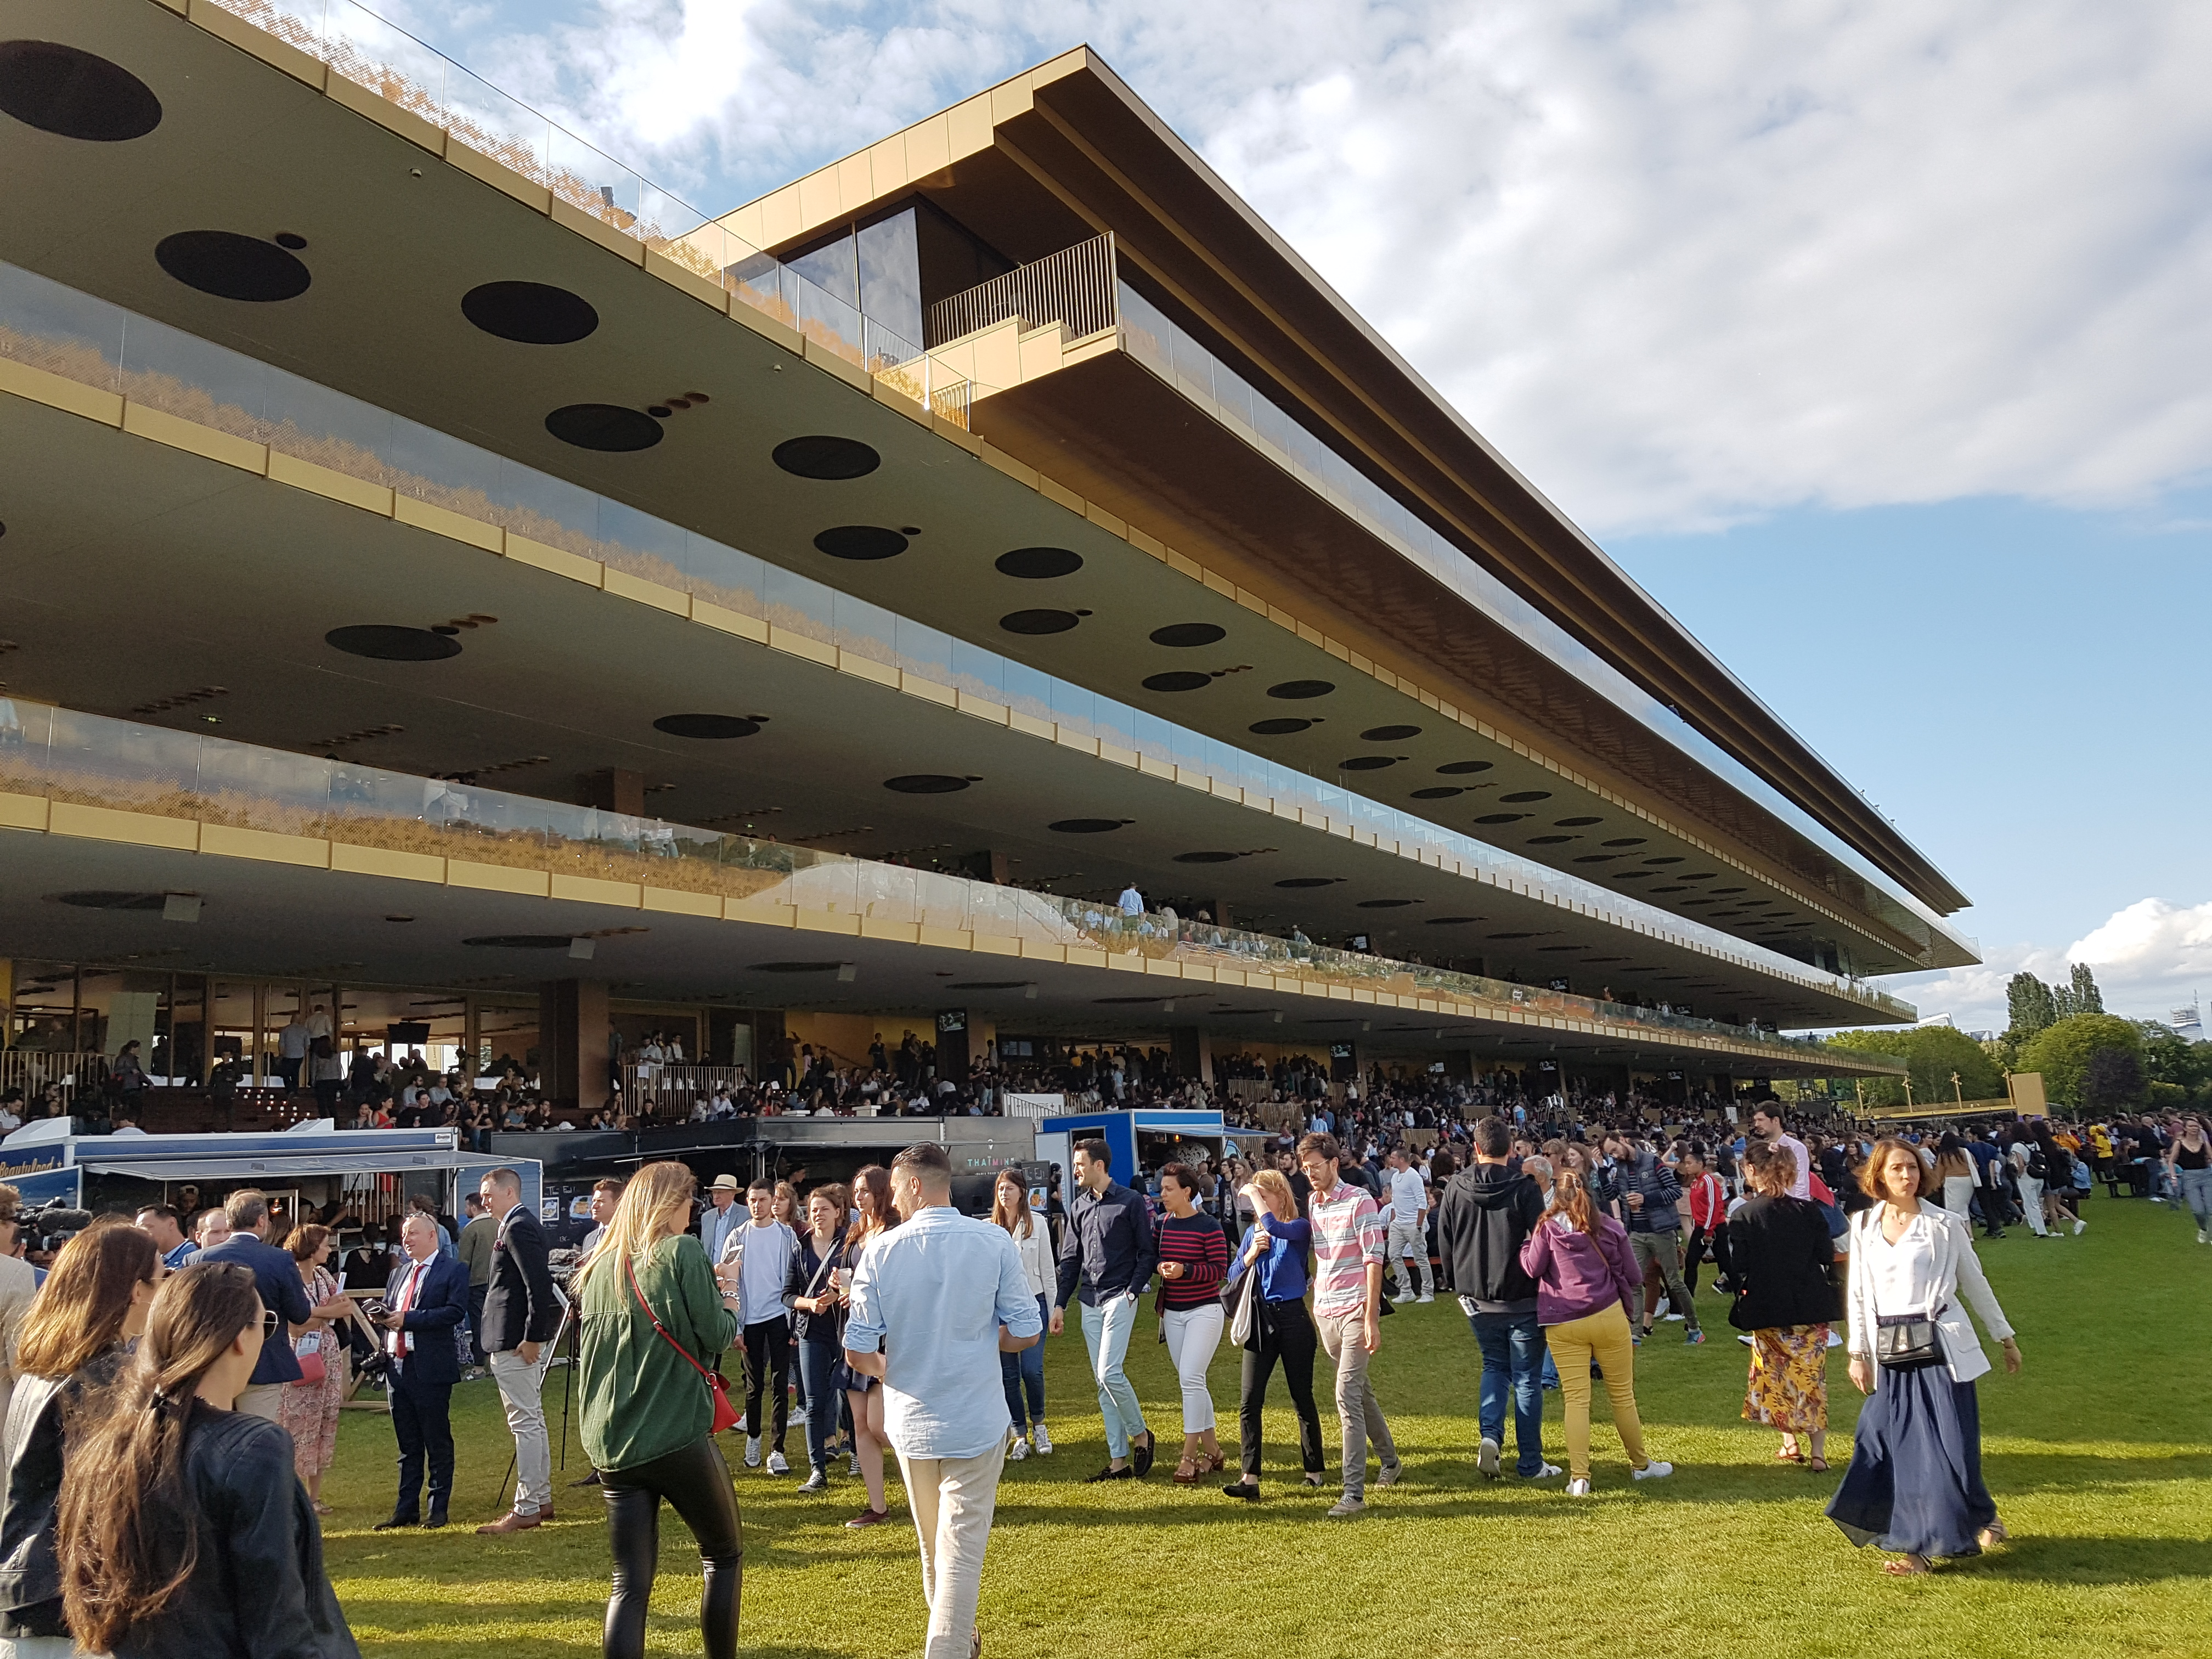 The main stand at ParisLongchamp is 160 metres long